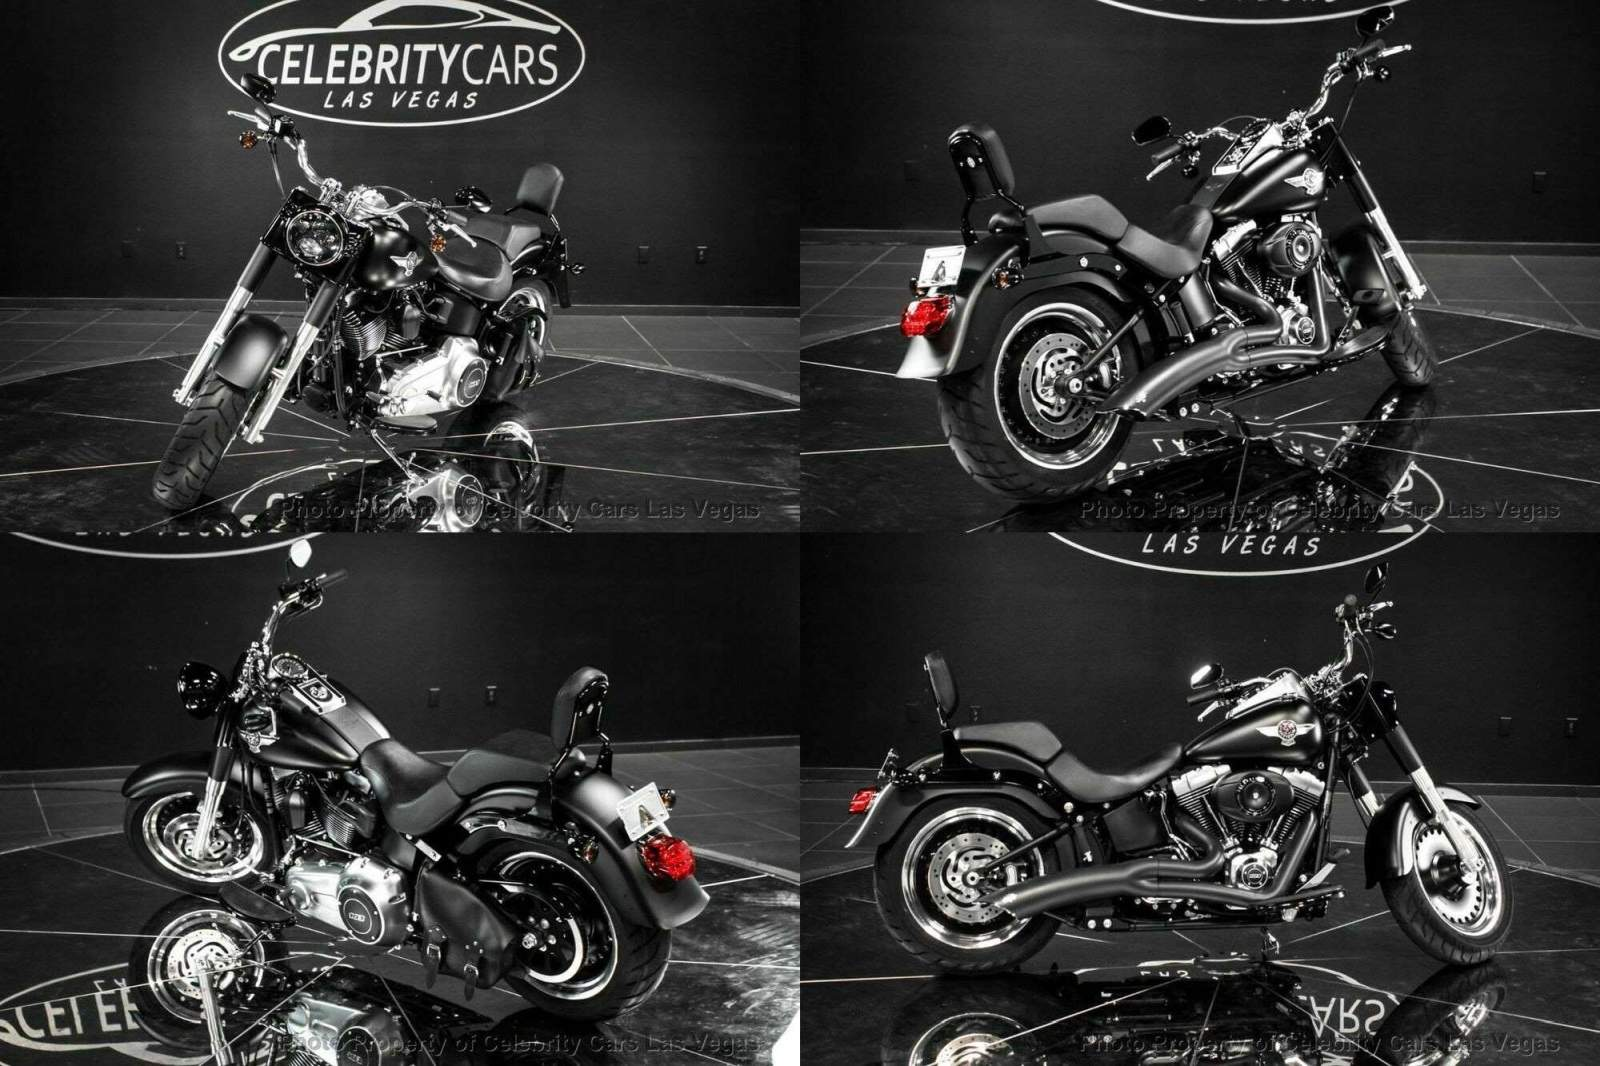 2013 Harley-Davidson Softail Softail Fat Boy Black used for sale